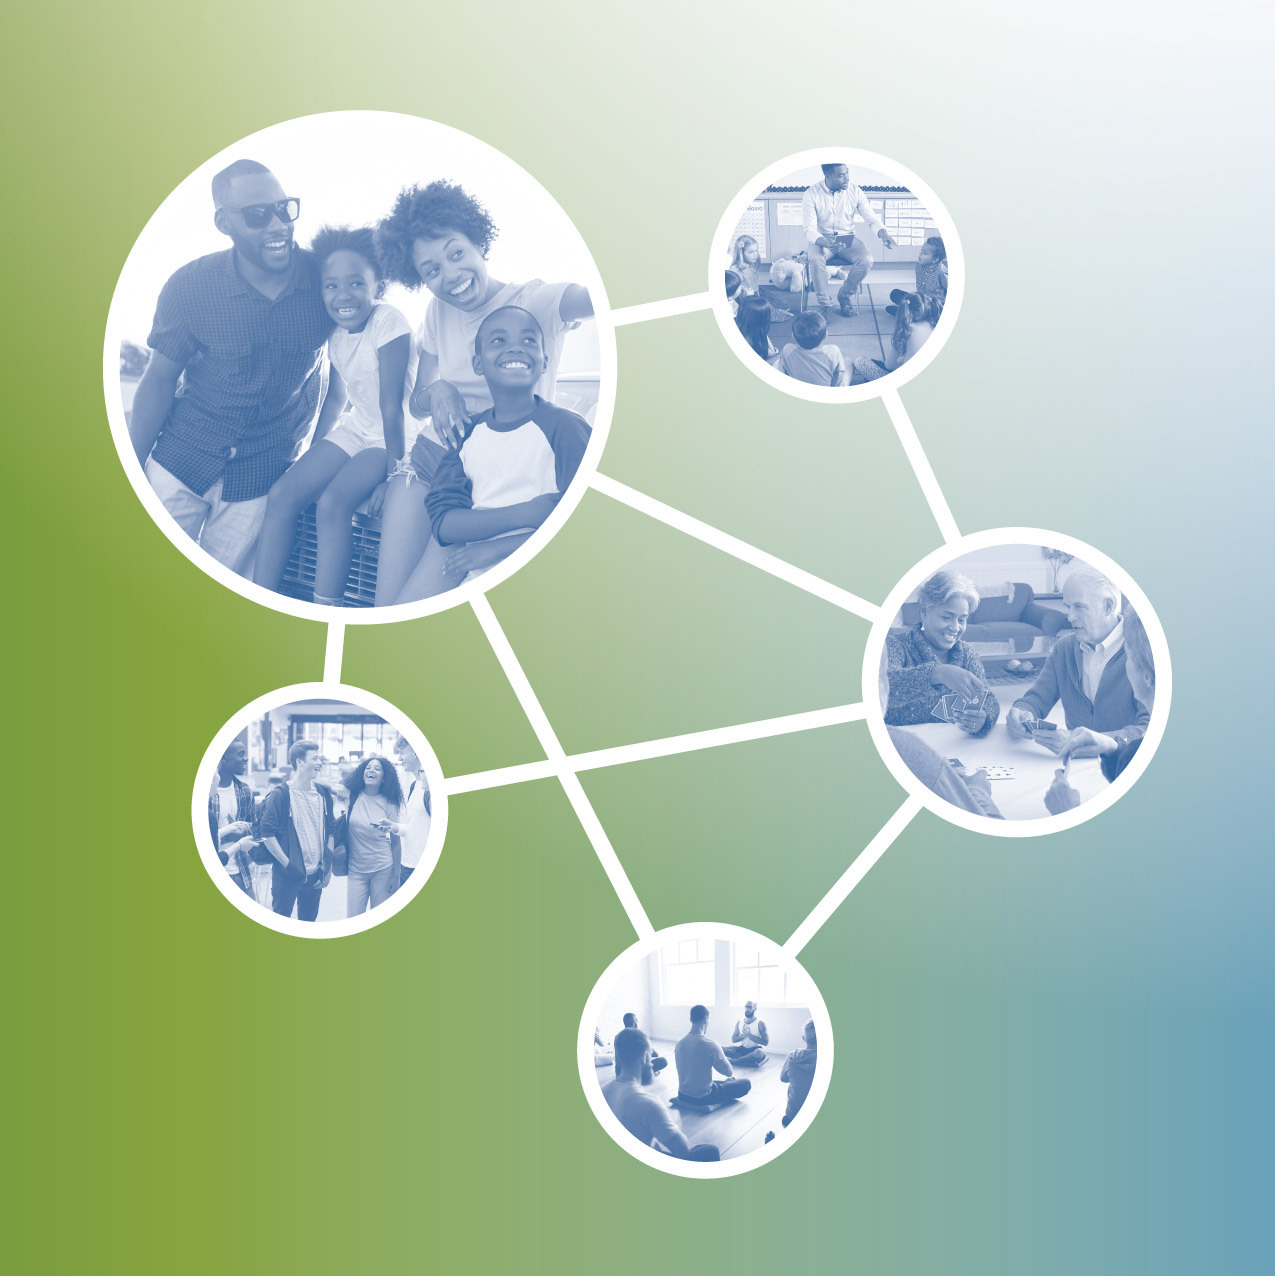 Emotional Wellbeing Networks